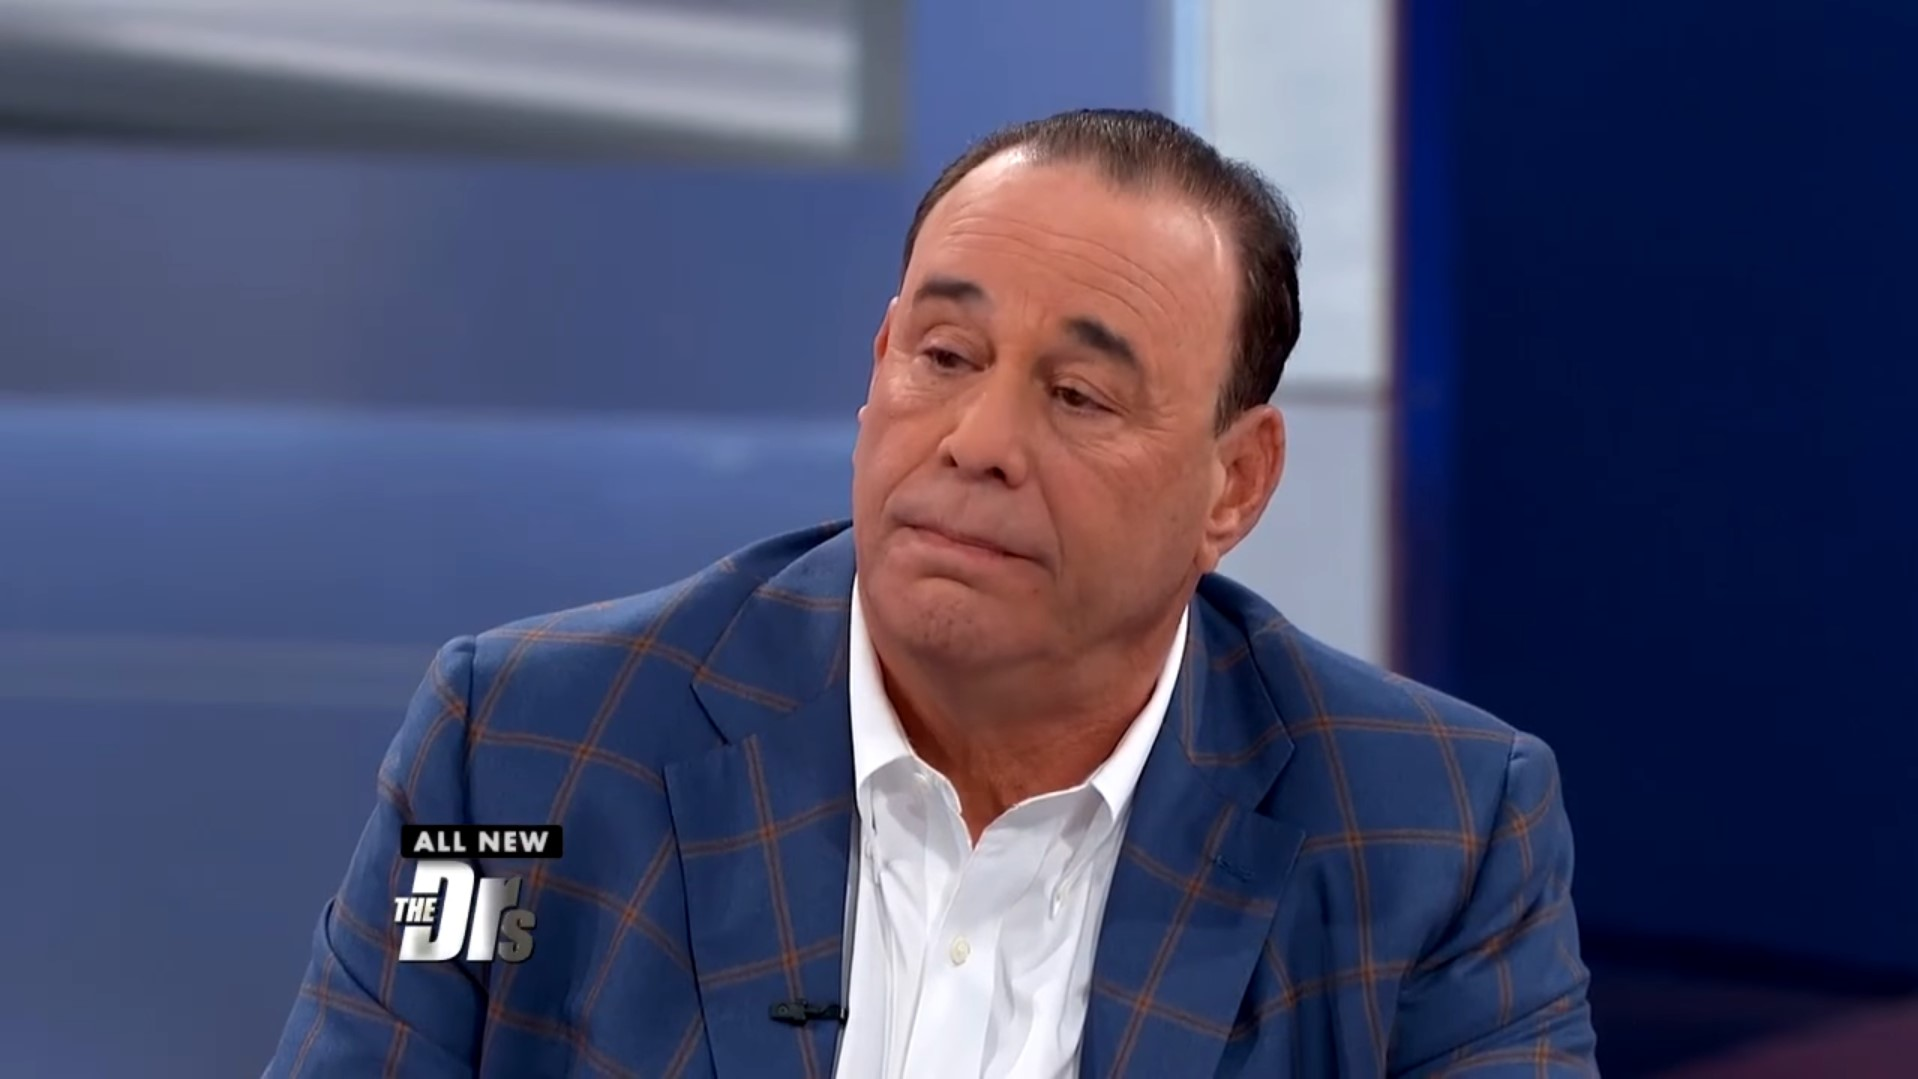 Is Jon Taffer Married? What About His Children, Ex-Wife?